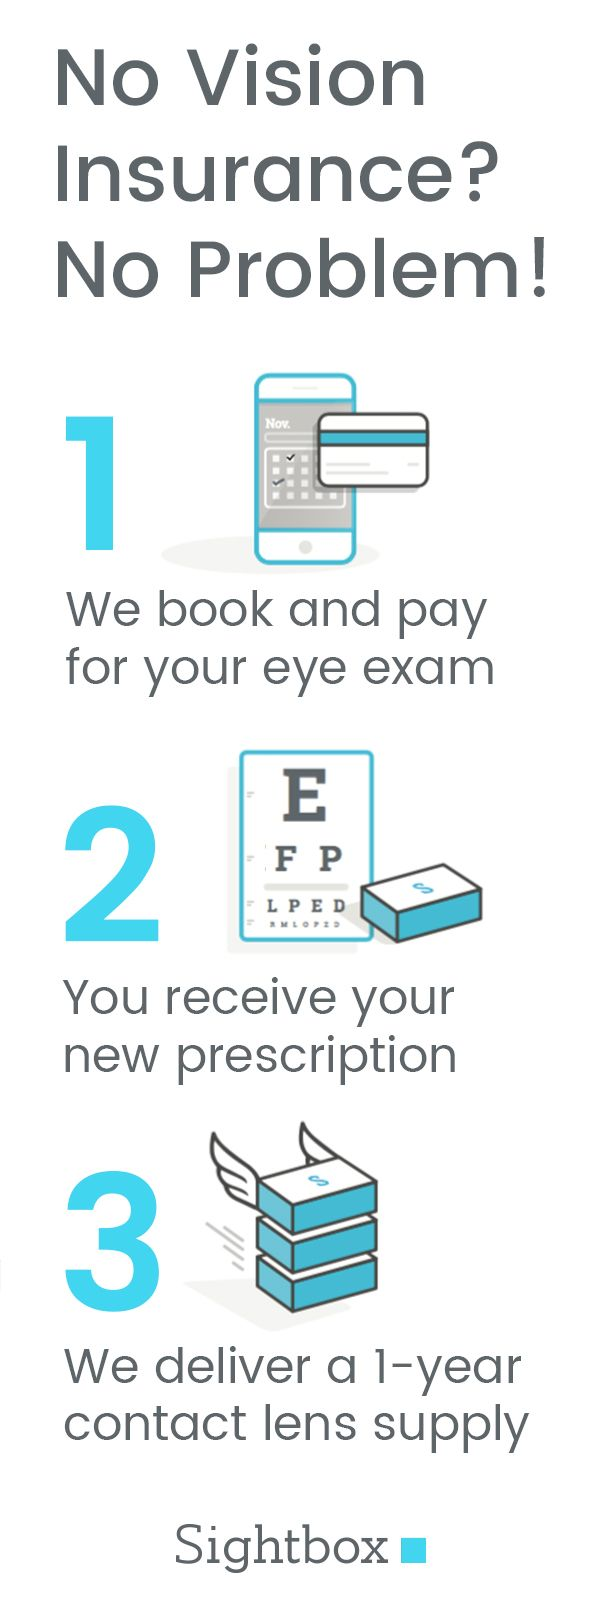 Wear contacts? We book and pay for your eye exam, then deliver a 1-year supply of contact lenses. All for $39 per month. Astigmatism lenses too!